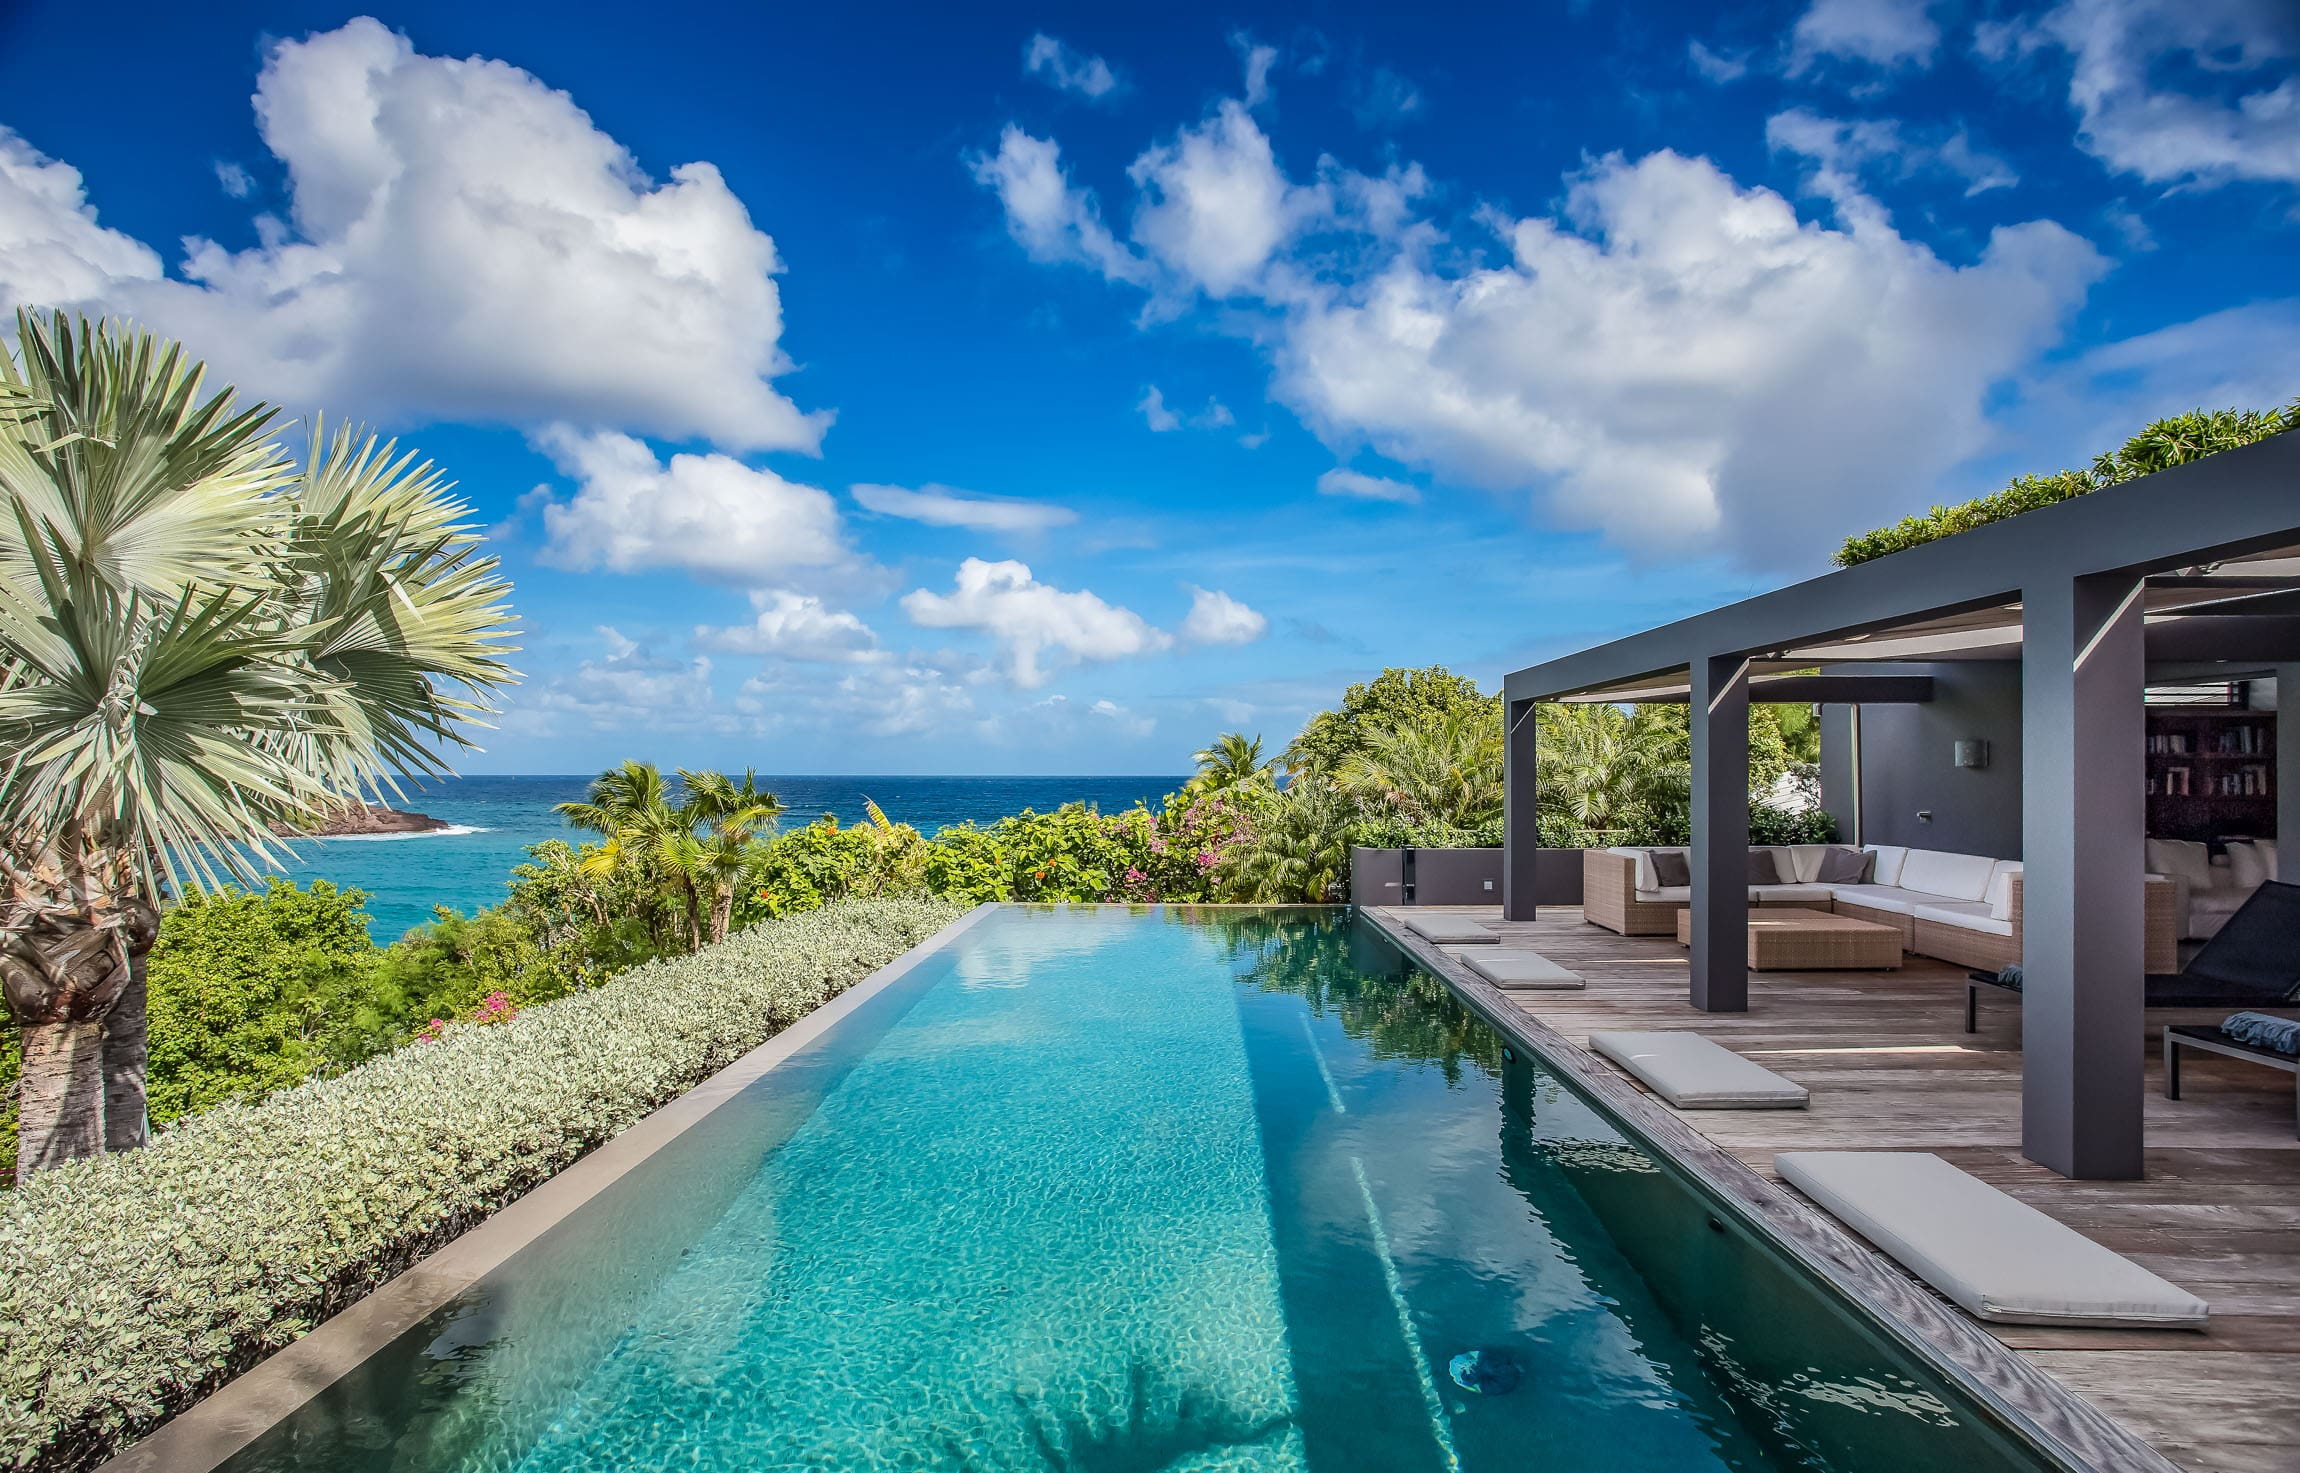 8 Reasons Why you Need to Visit St Barts